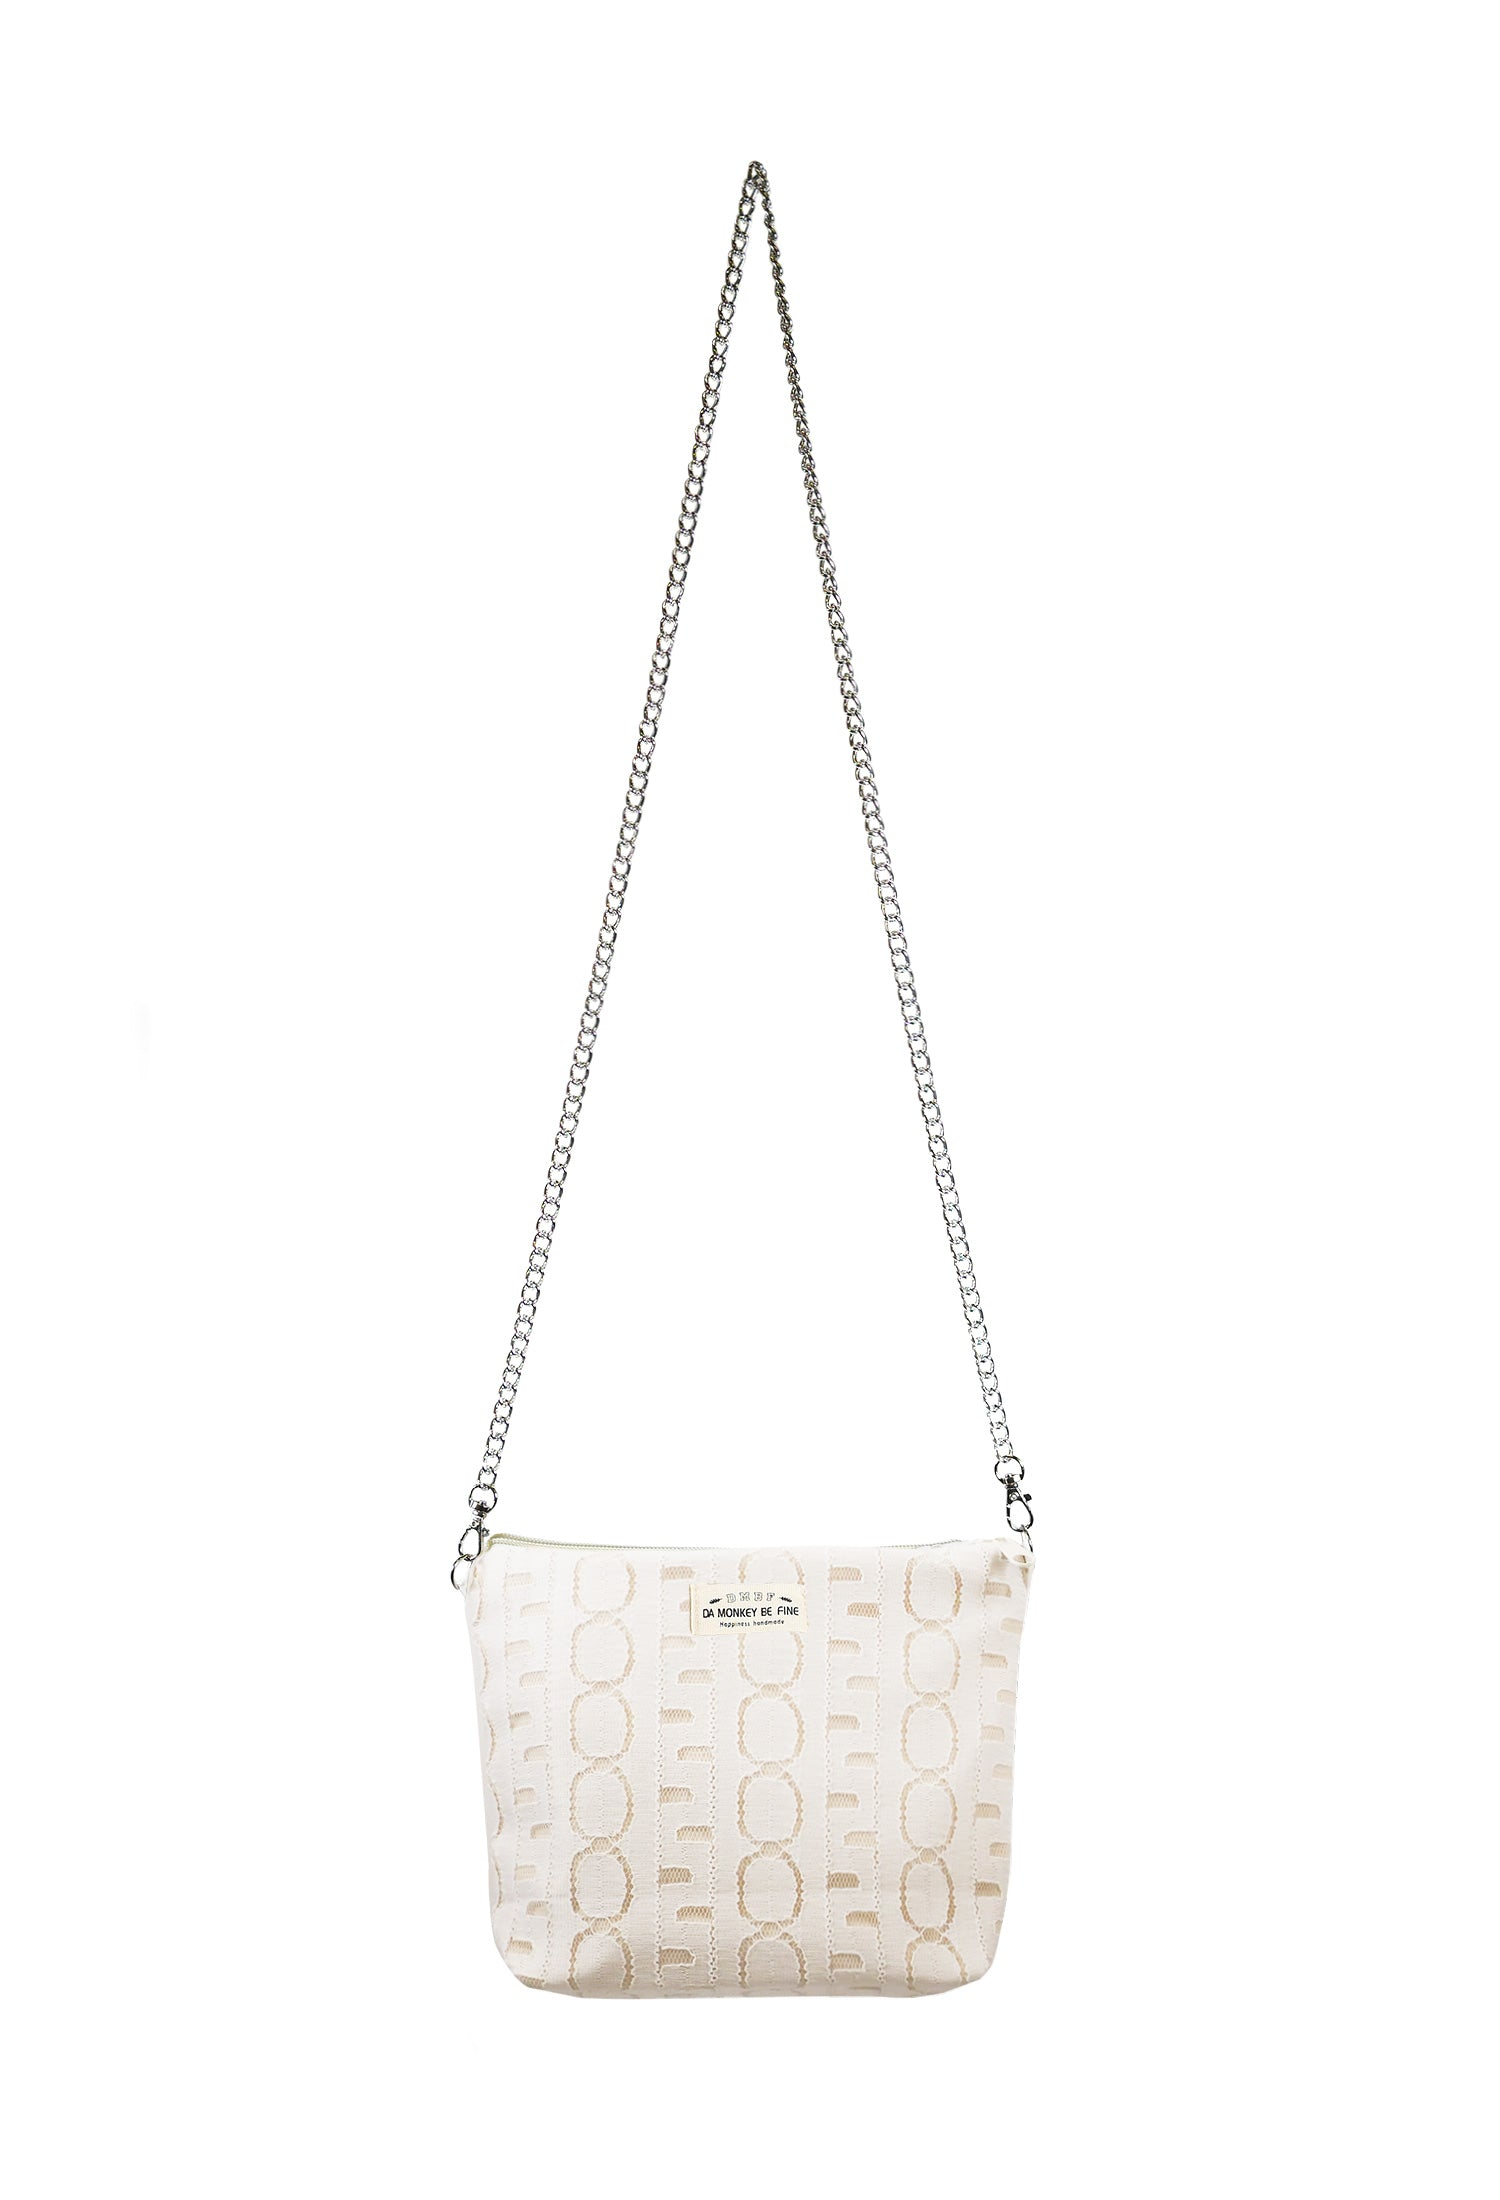 White Lace Canvas Sling Bag.白色蕾絲帆布吊帶包